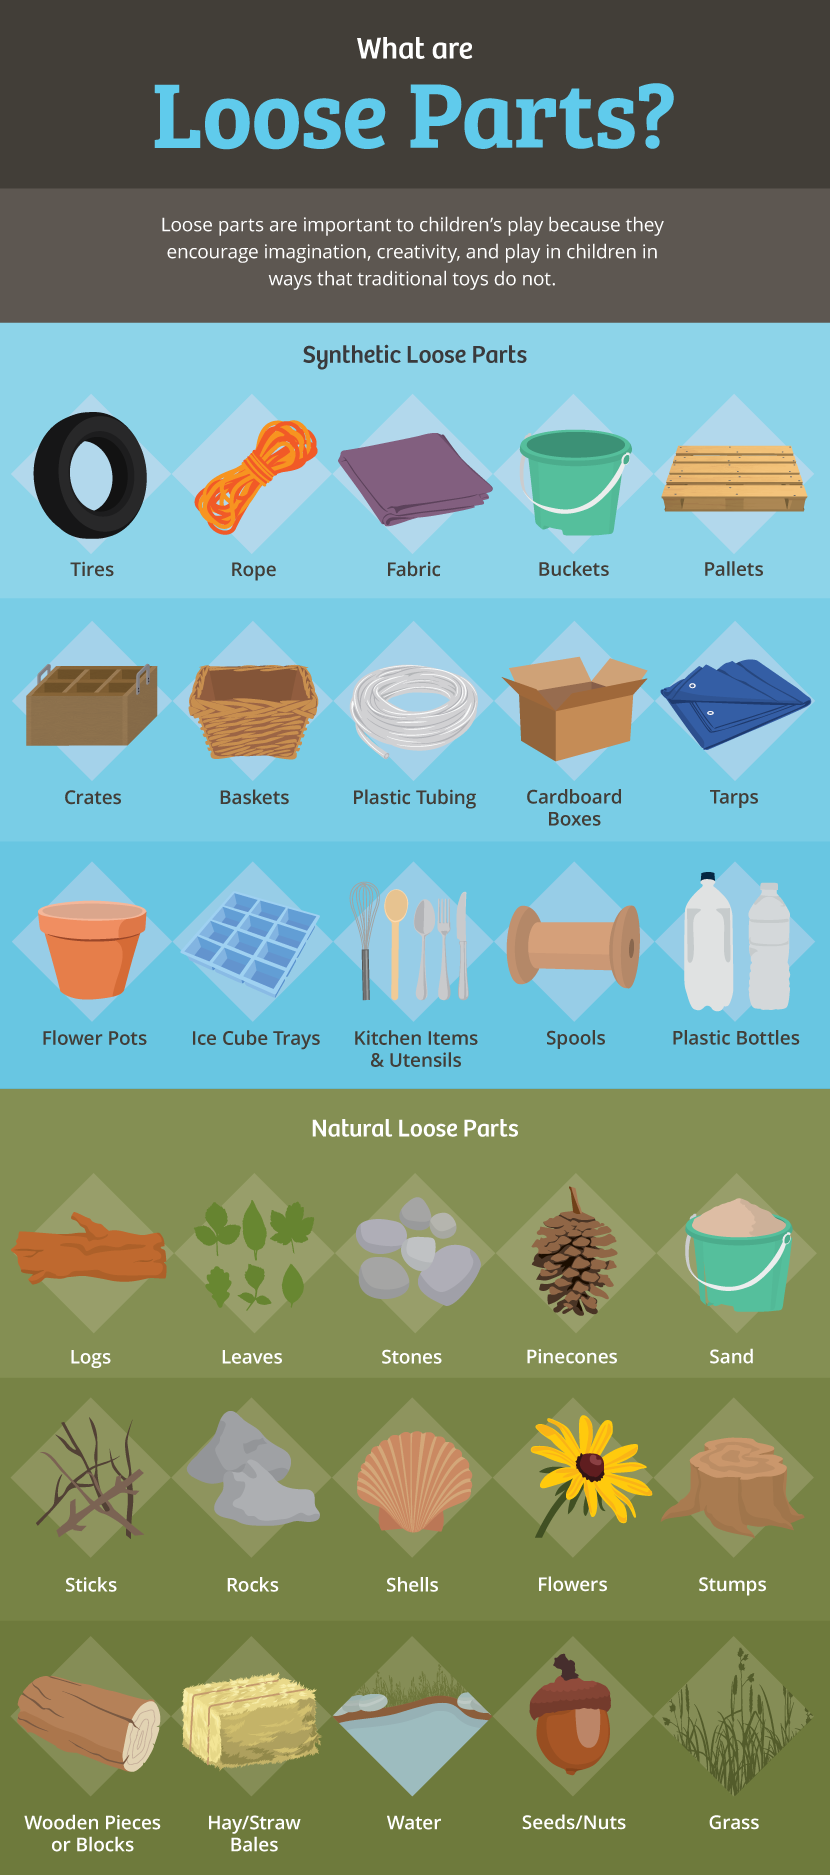 What Are Loose Parts - Bring Back Children's Play